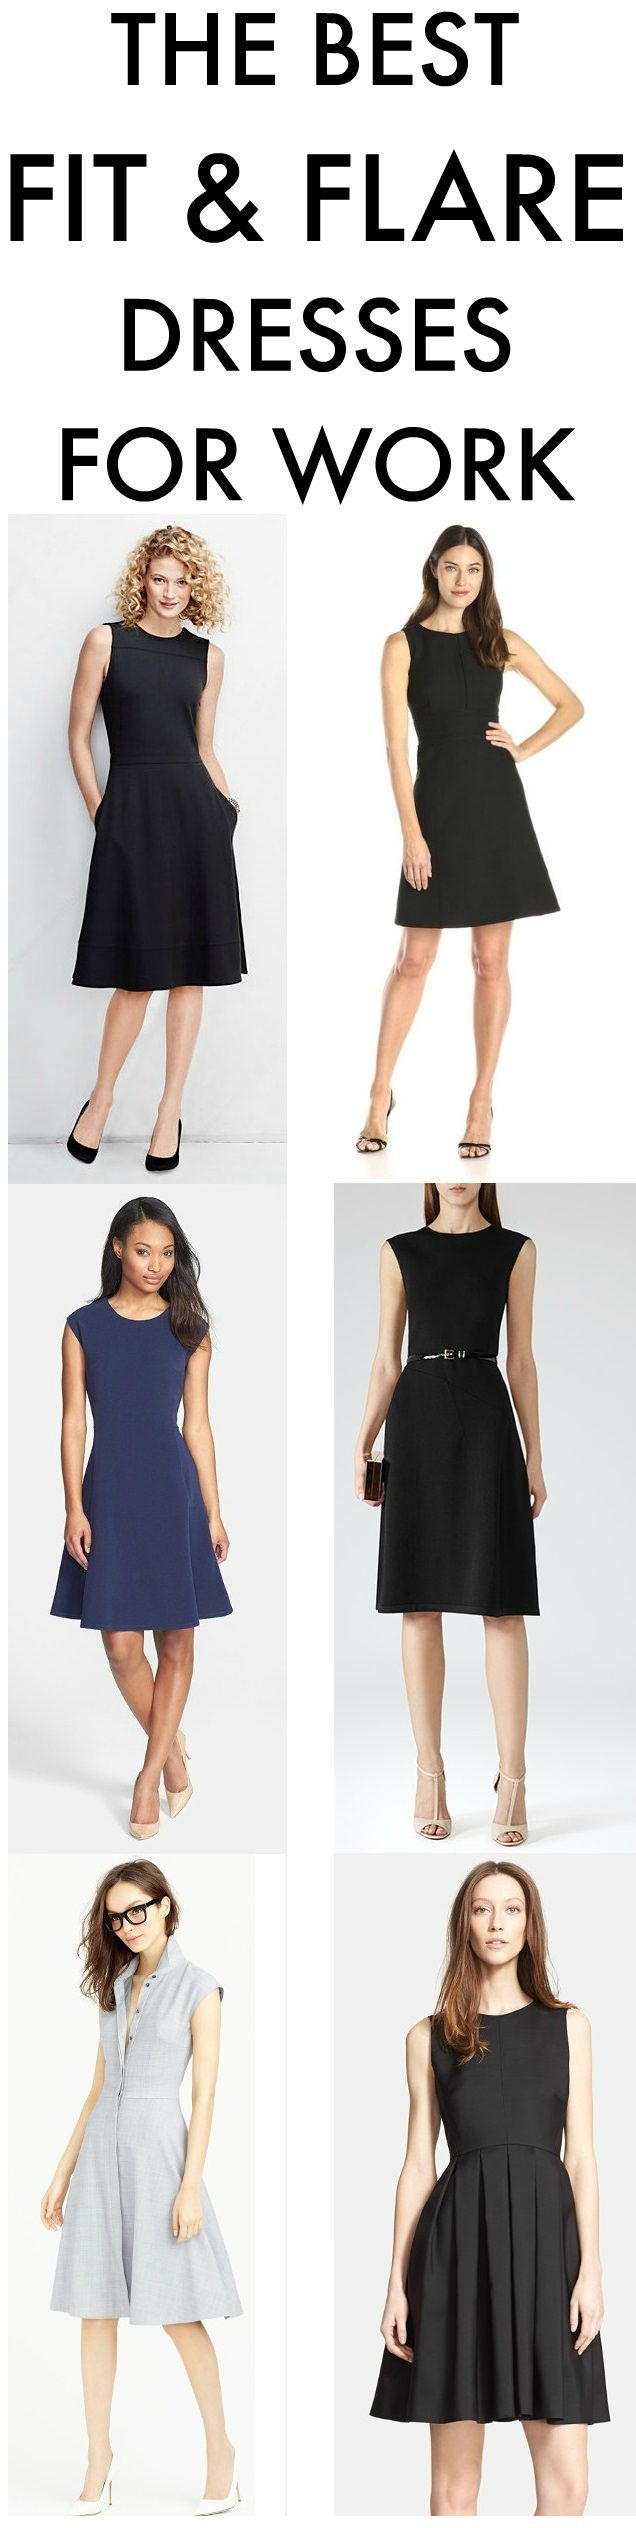 Fit and flare dresses make great work outfits -- we rounded up some of the best for all shapes and sizes.  Which are your favorite flared dresses for work? - white party dresses, shop for dresses, royal blue and white dress *ad